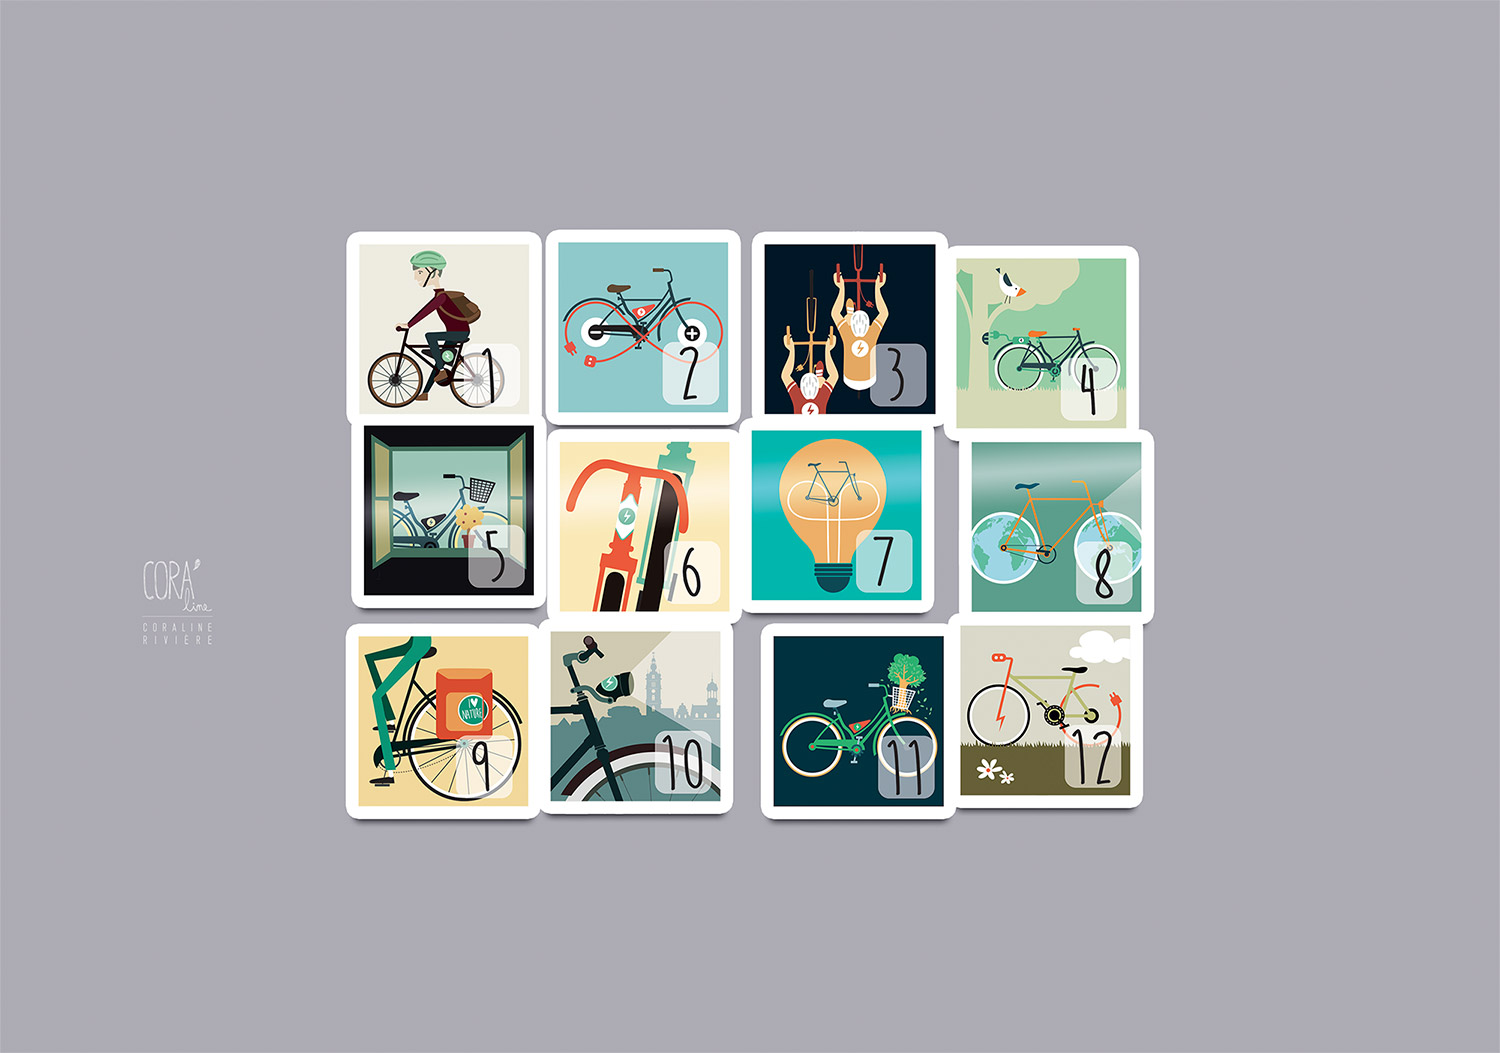 stickers ucl mons illustration graphisme theme velo electrique decoration casier velo1